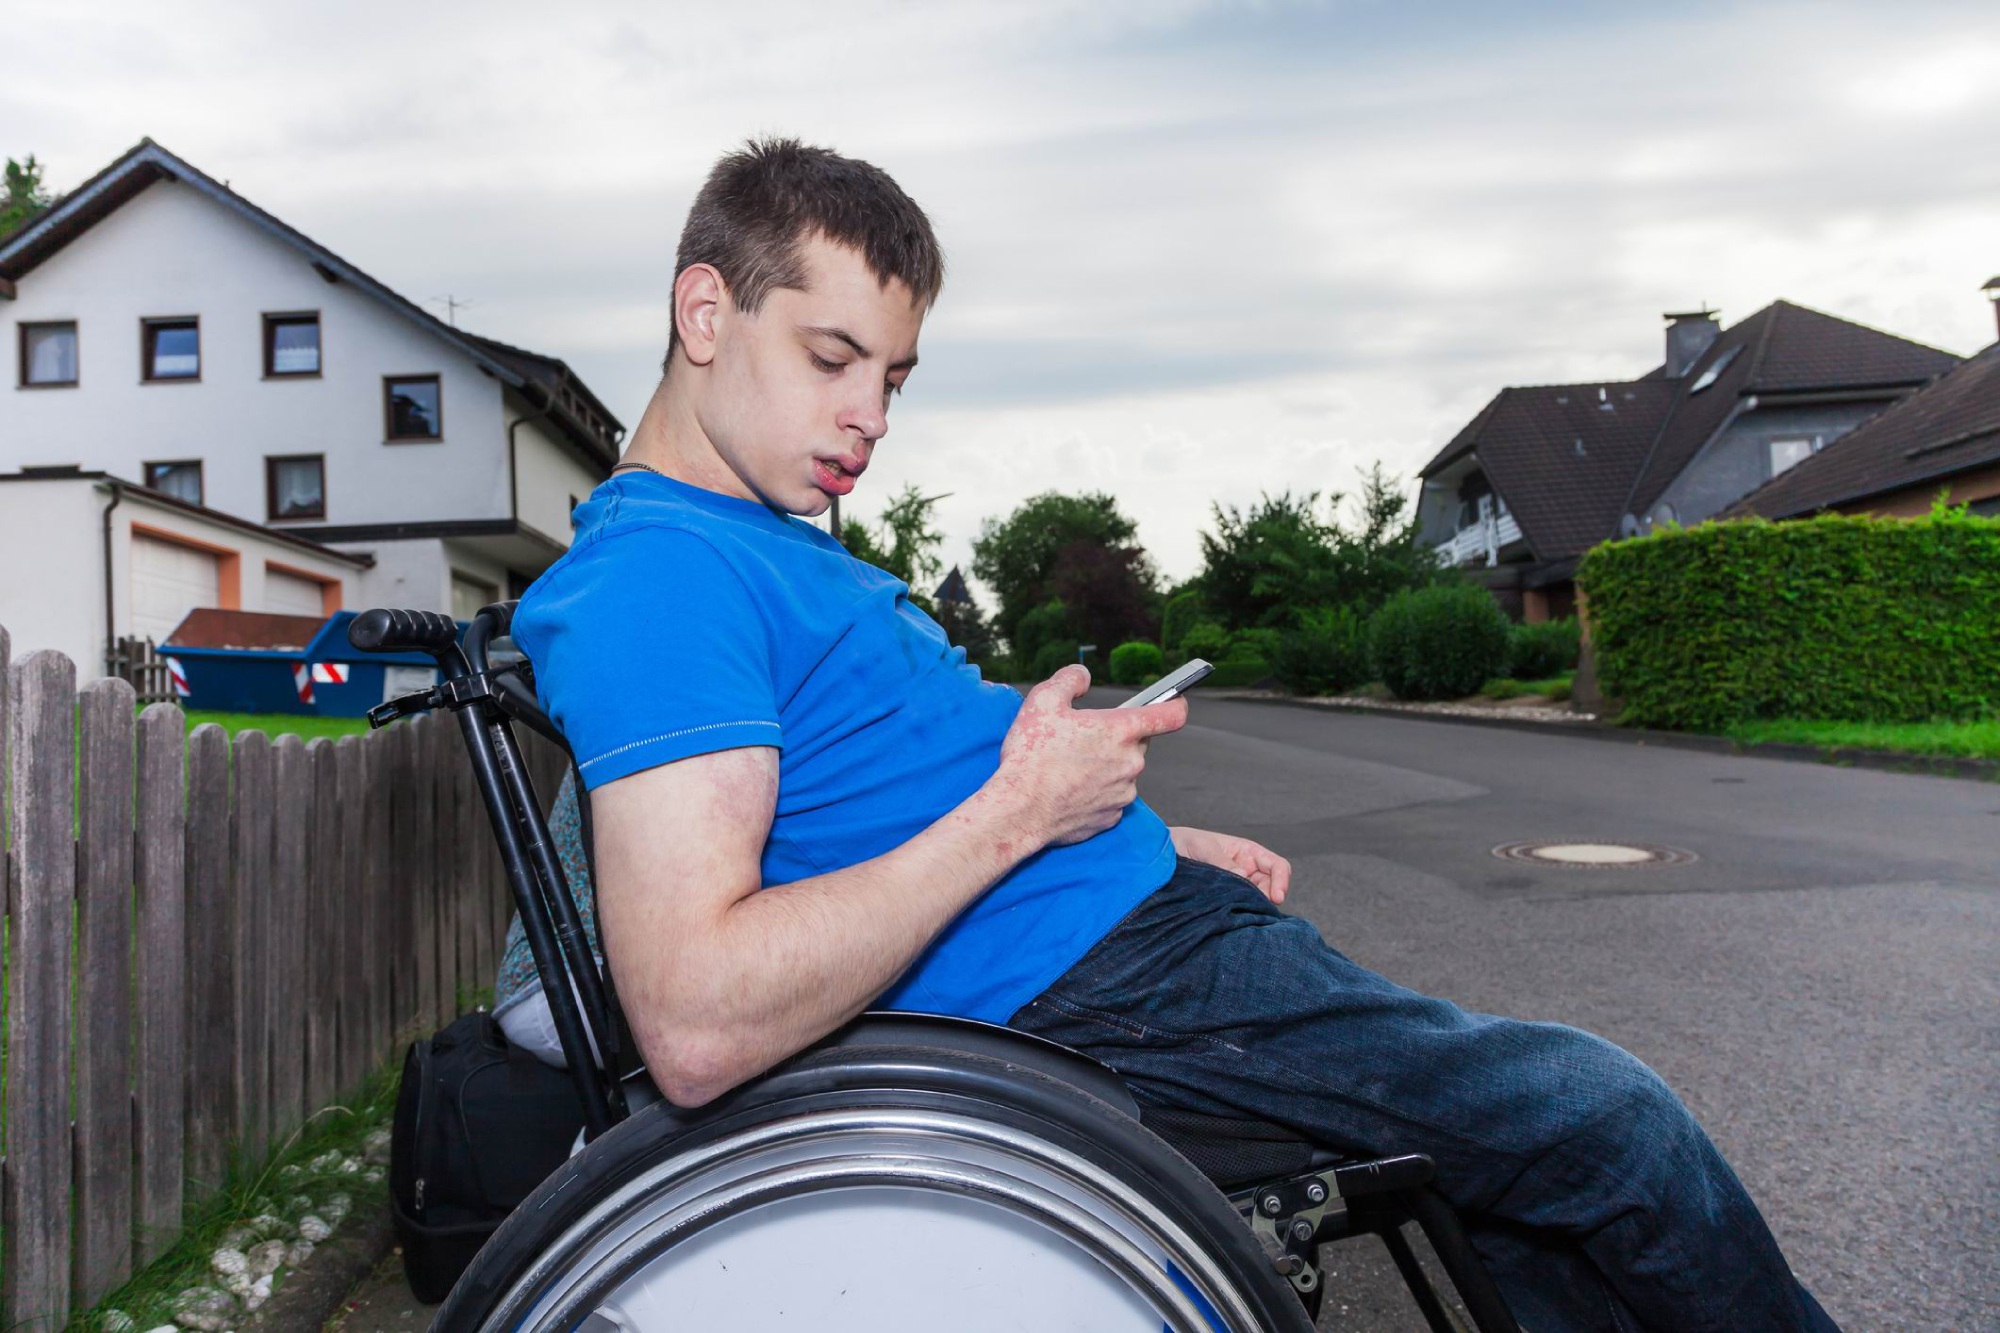 Smartphones are now key in helping people with disabilities navigate.